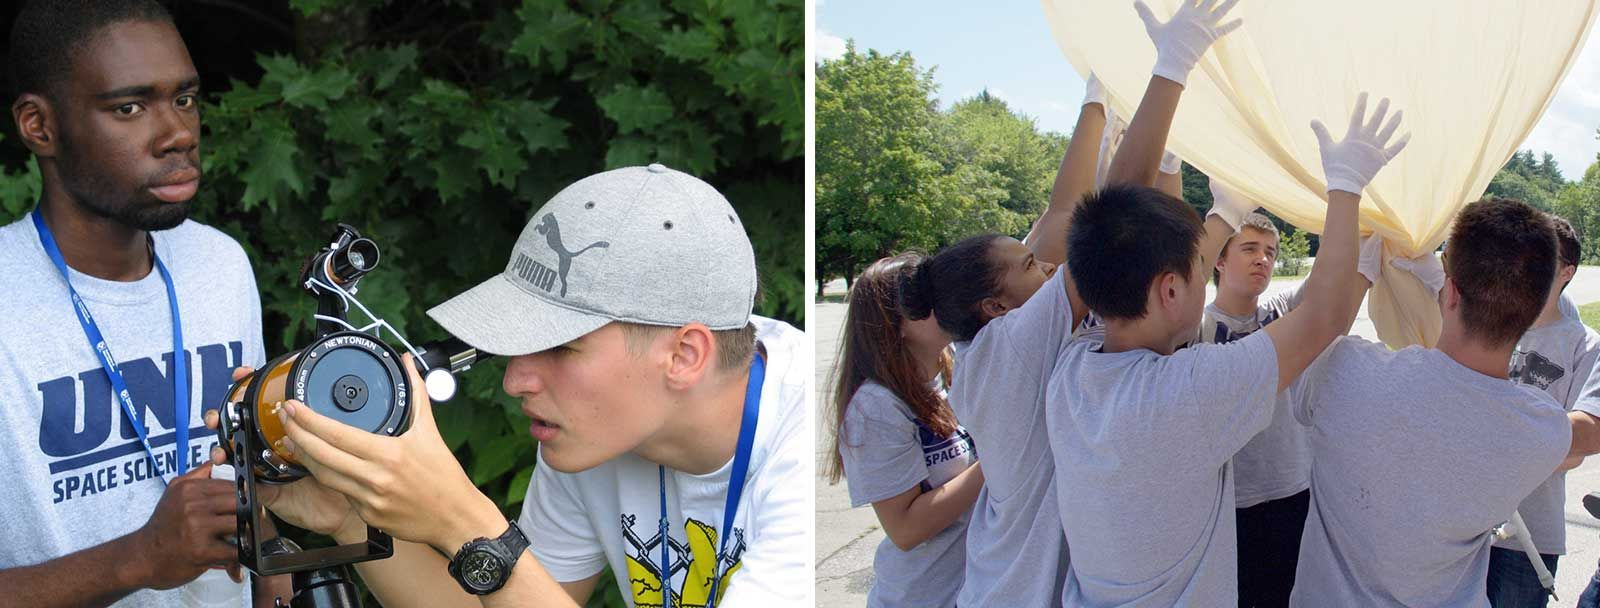 UNH Project SMART participants and their high-altitude scientific balloon